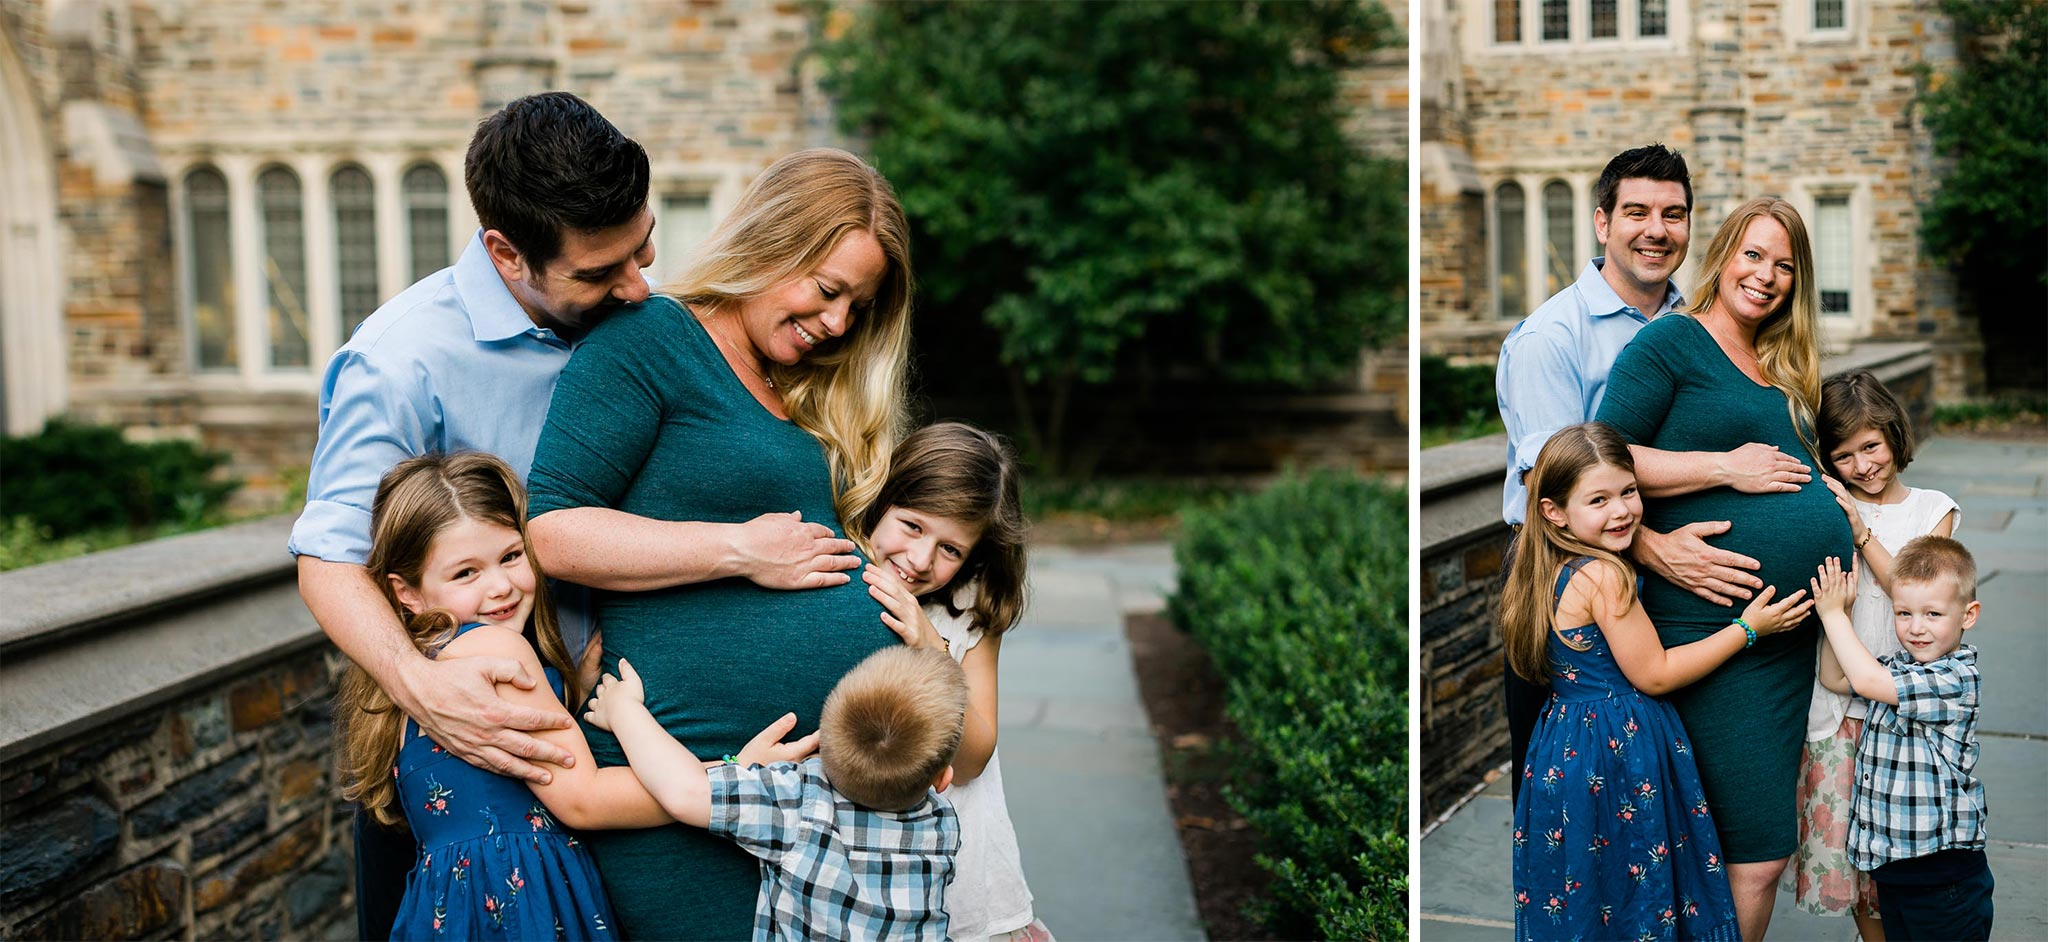 Family Group Hug at Duke University | Durham Maternity Photographer | By G. Lin Photography